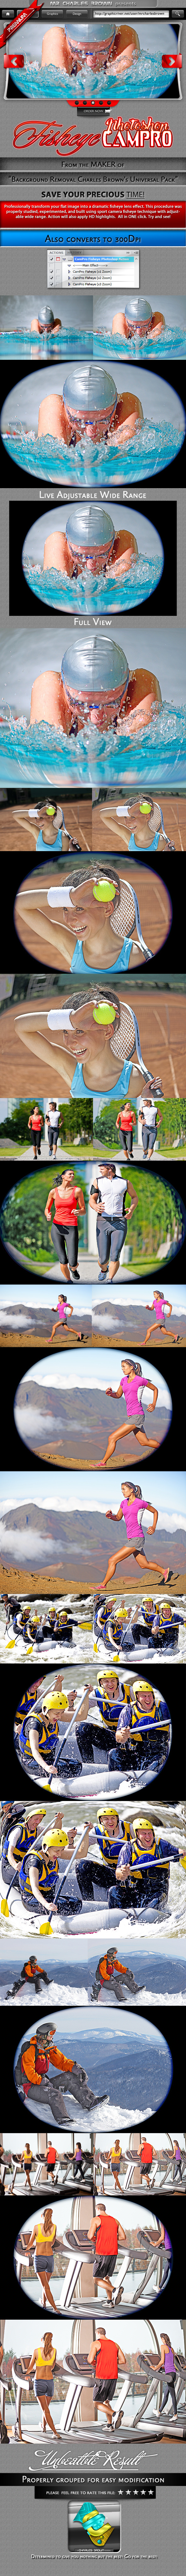 CamPro Fisheye Photoshop Action - Photo Effects Actions